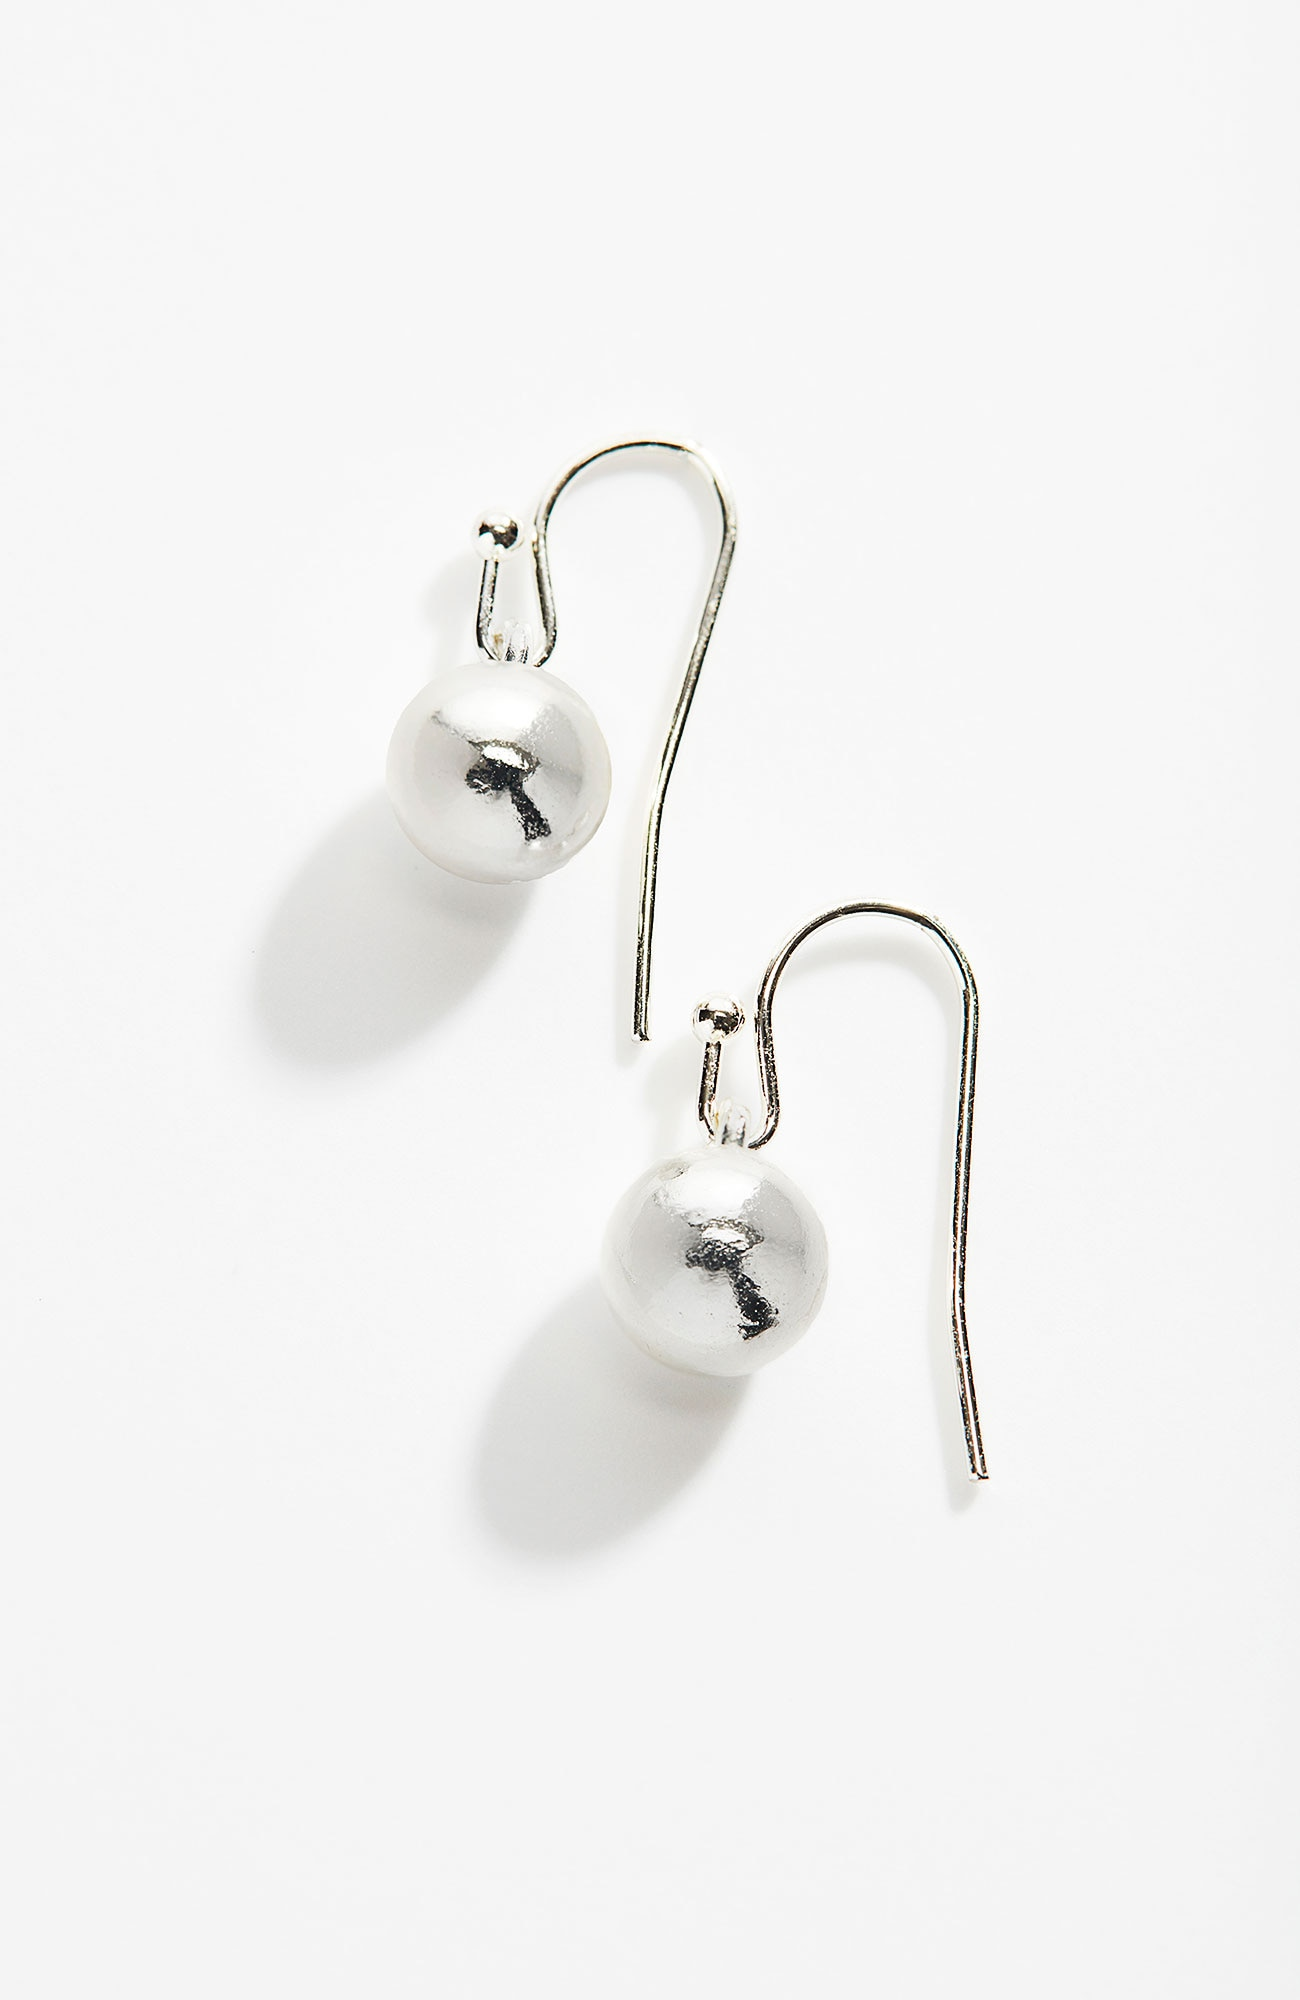 sculpted-metal earrings